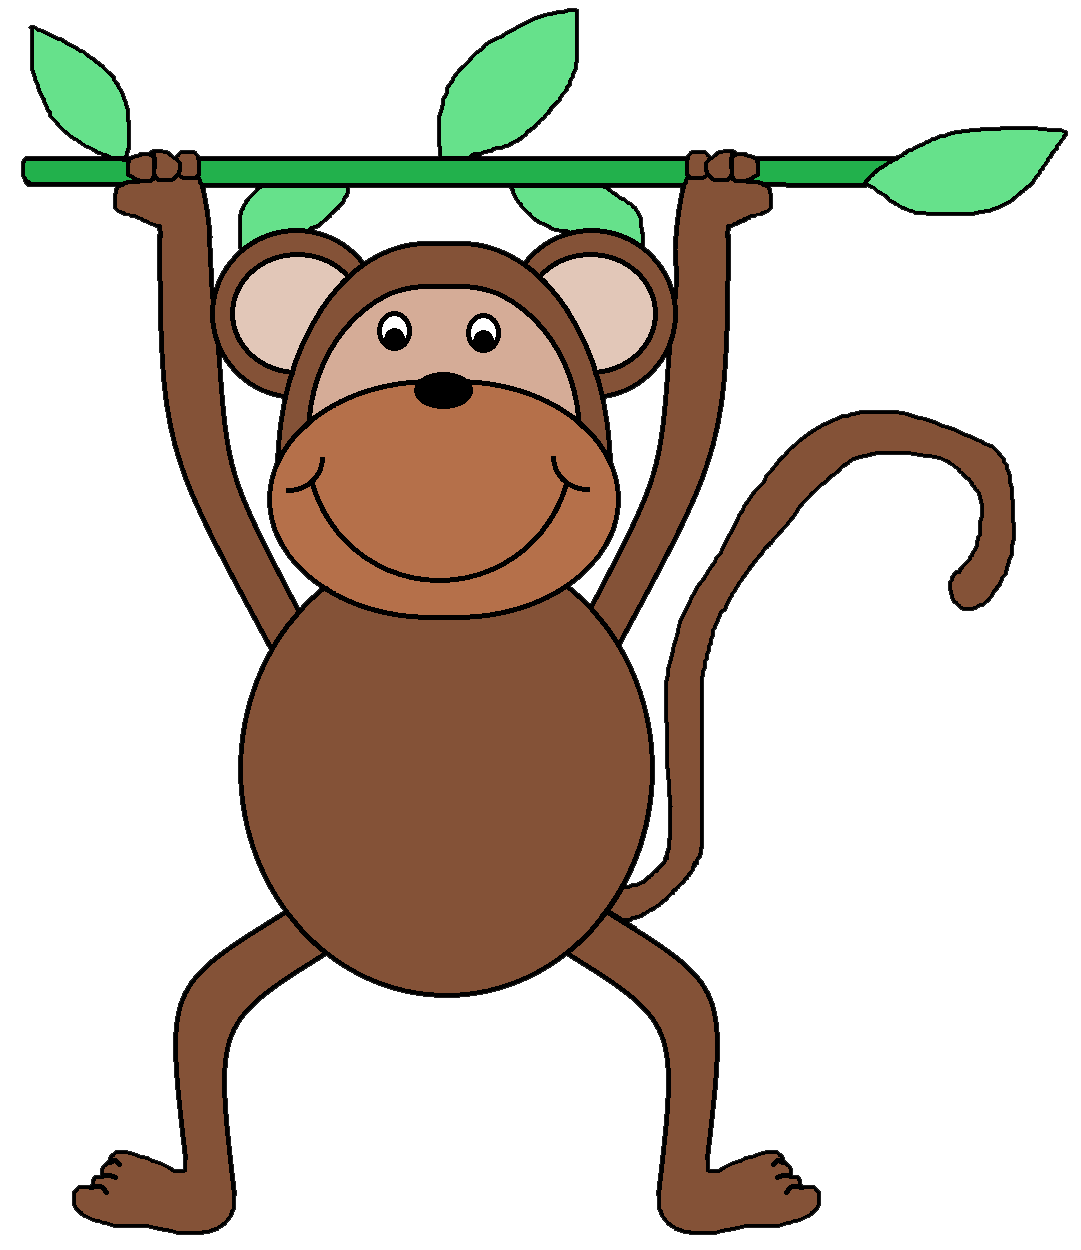 clipart image of monkey - photo #7